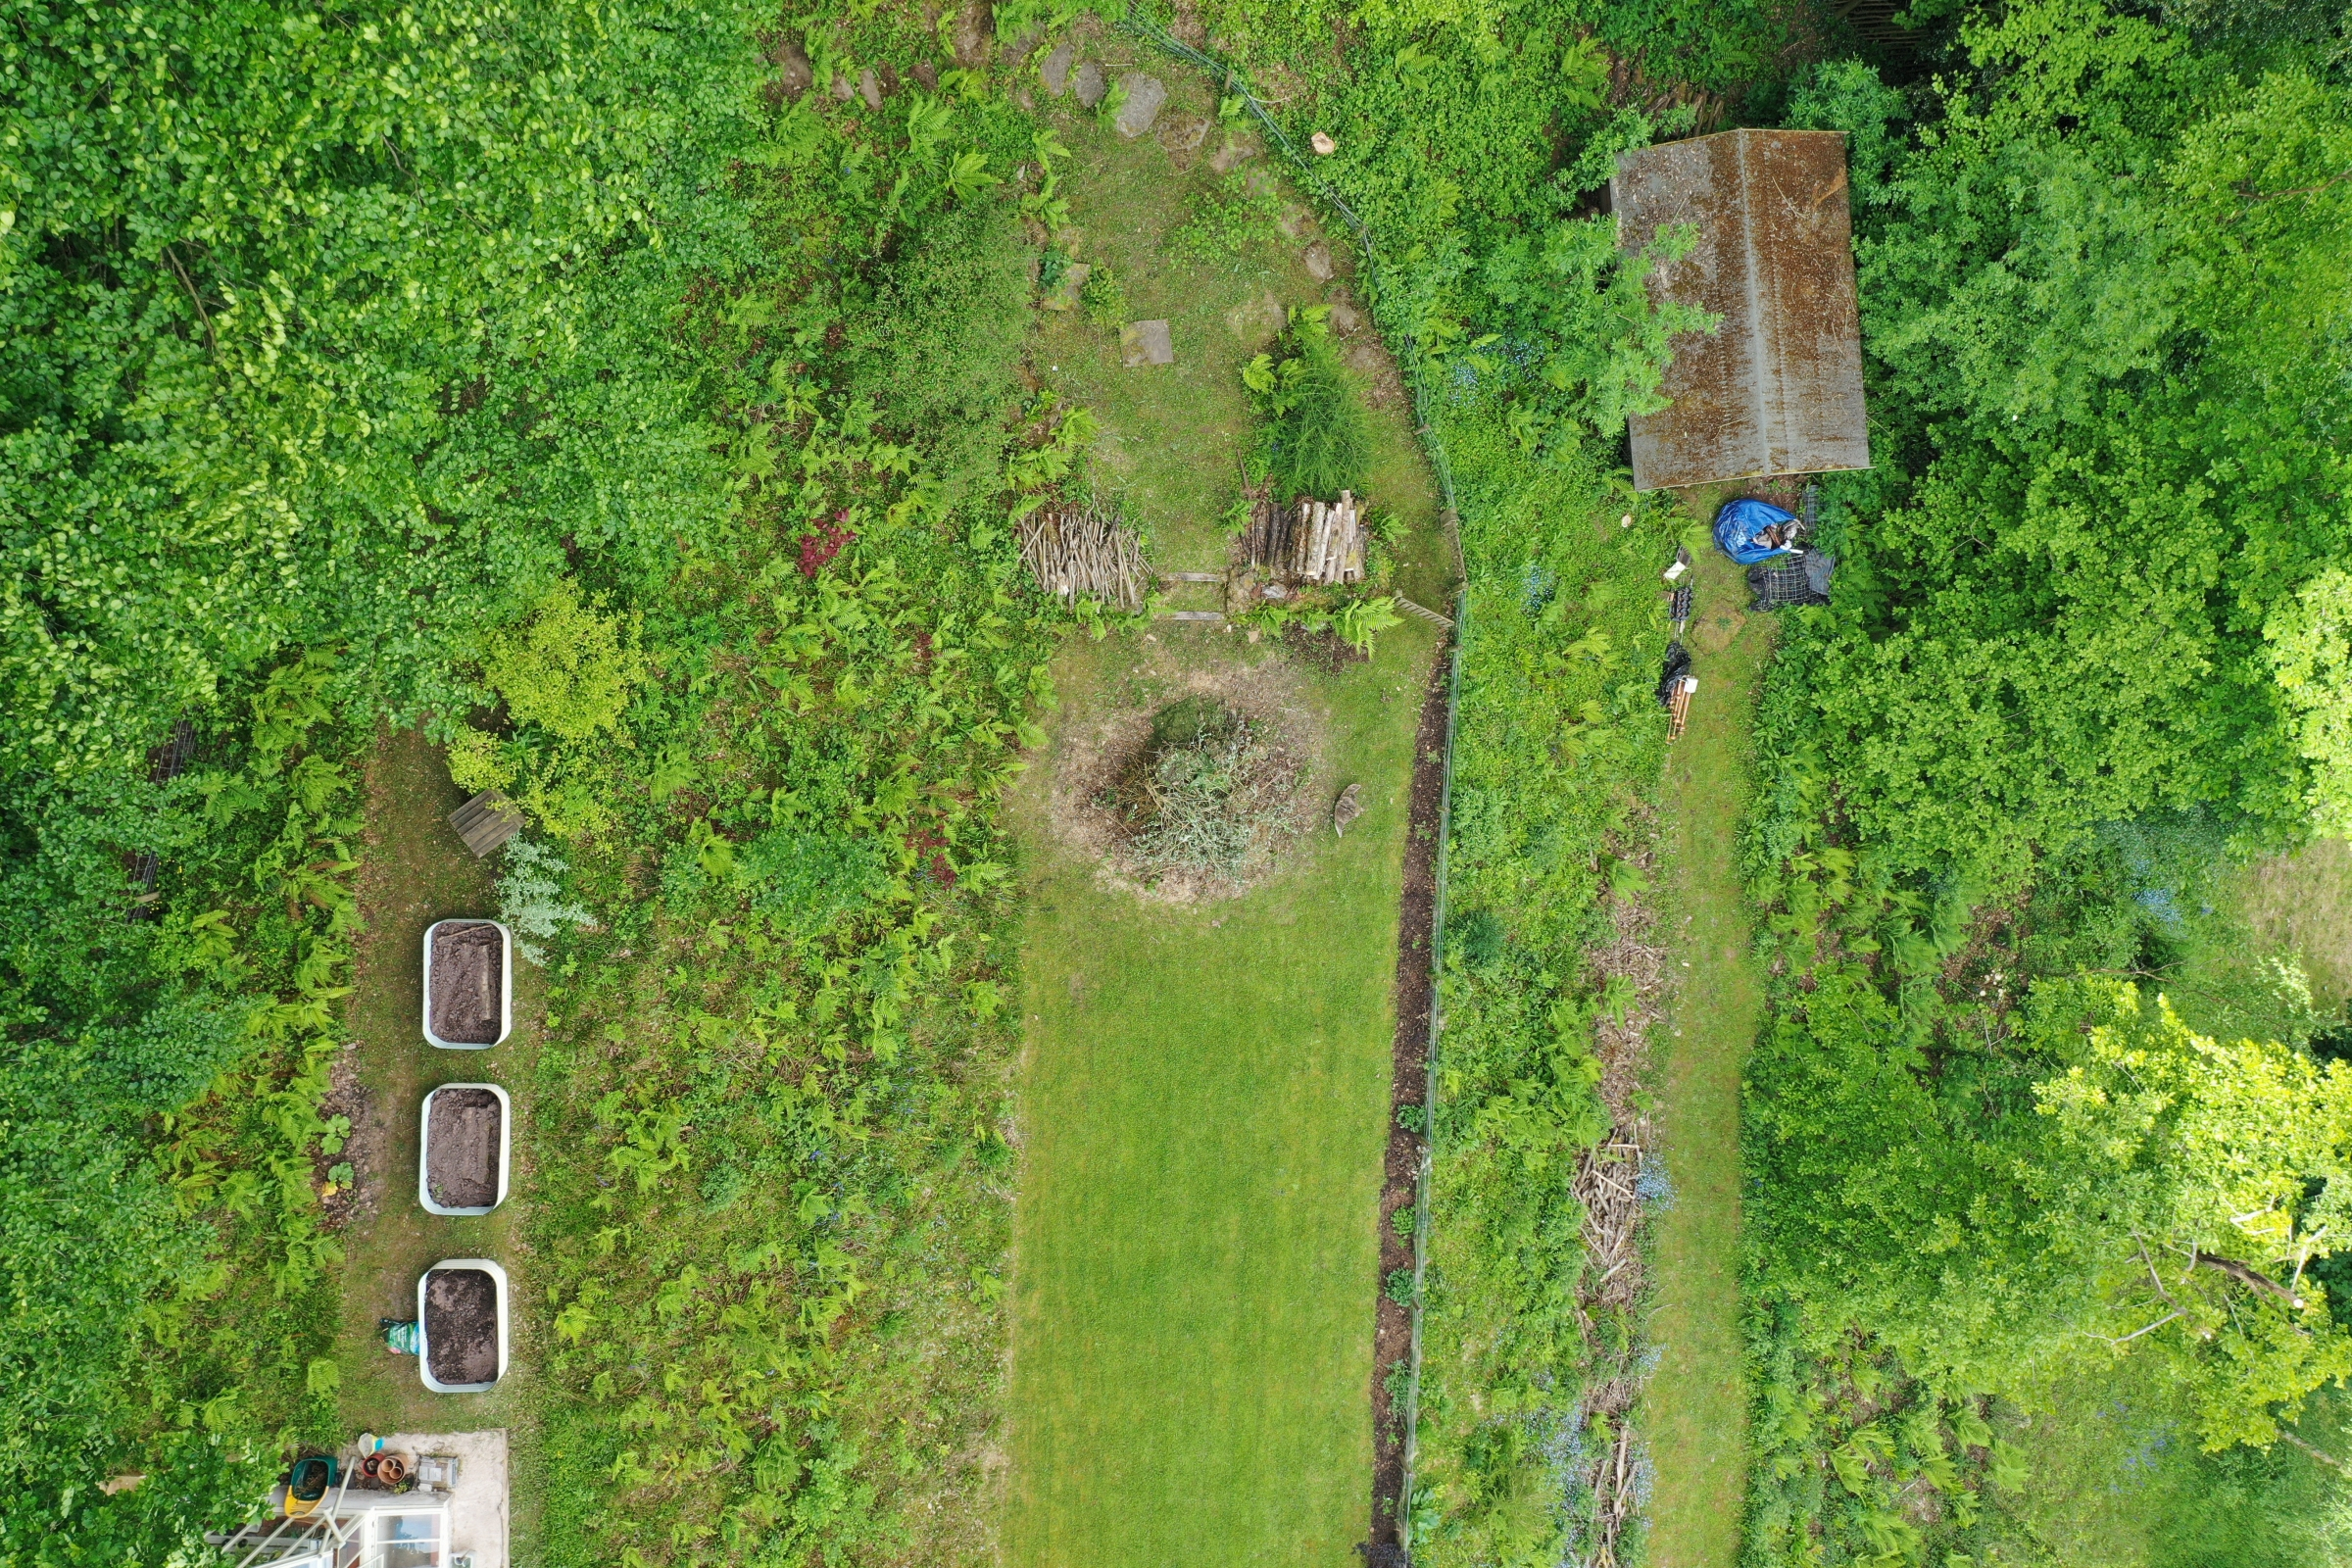 Aerial survey property herefordshire with certified drone pilot Luke Sutton 4 aerial drone inspection survey